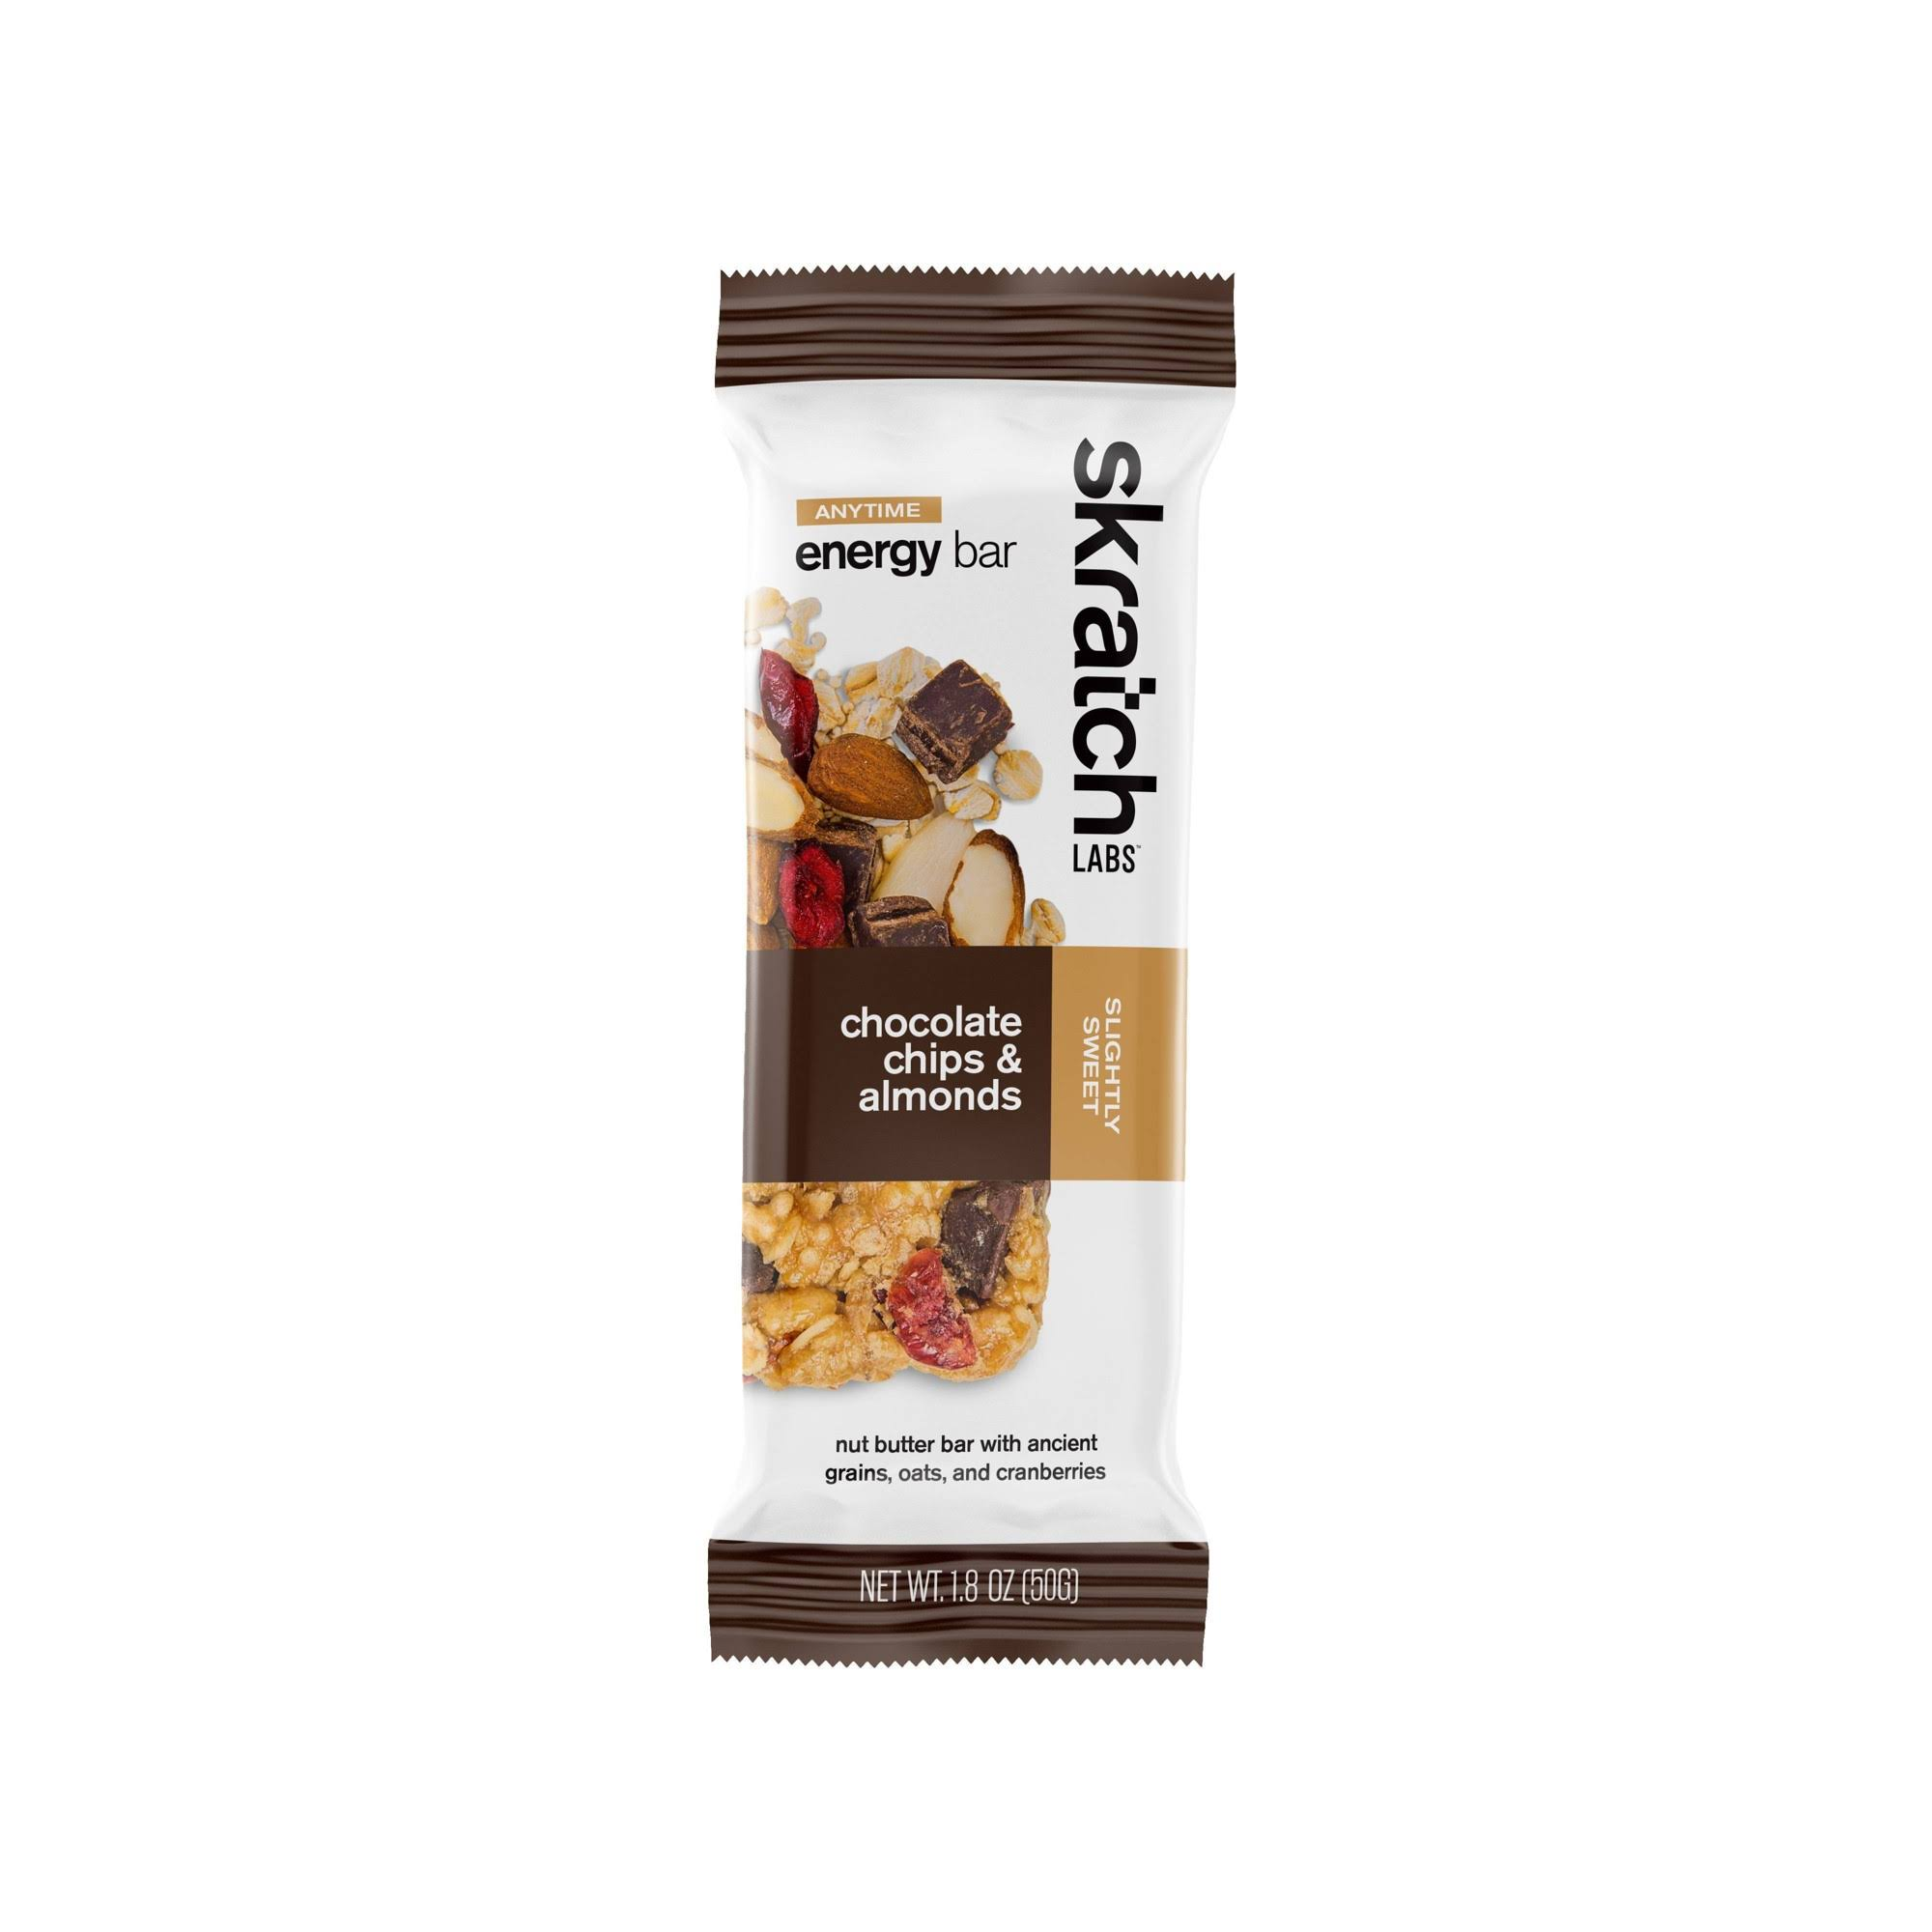 Skratch Labs Anytime Energy Bar Almond Chocolate